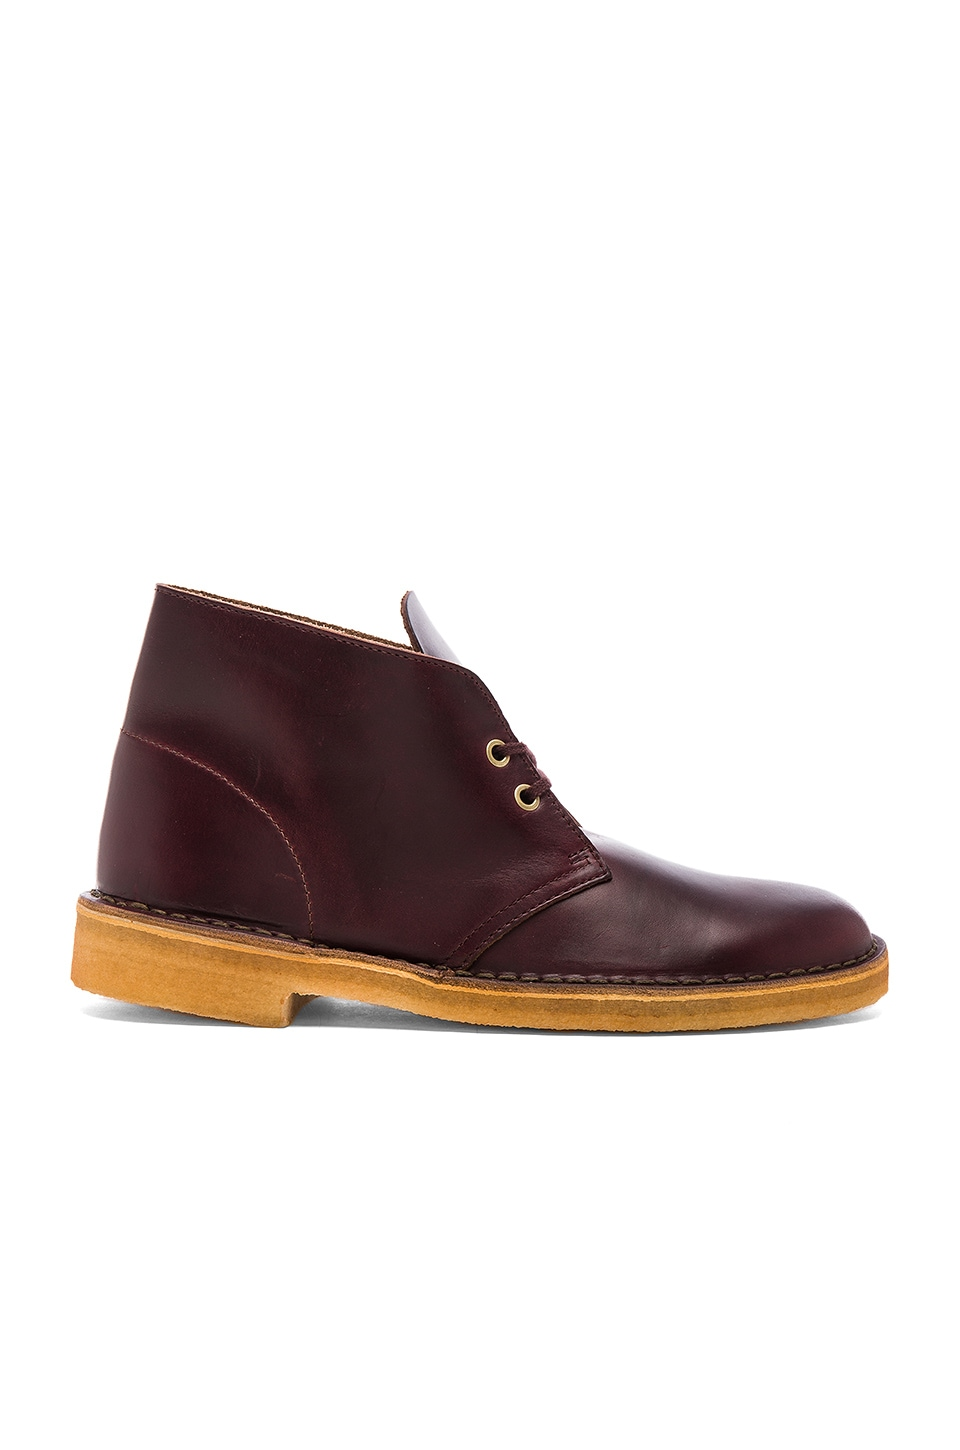 Clarks Originals Desert Boot Horween Leather in Red